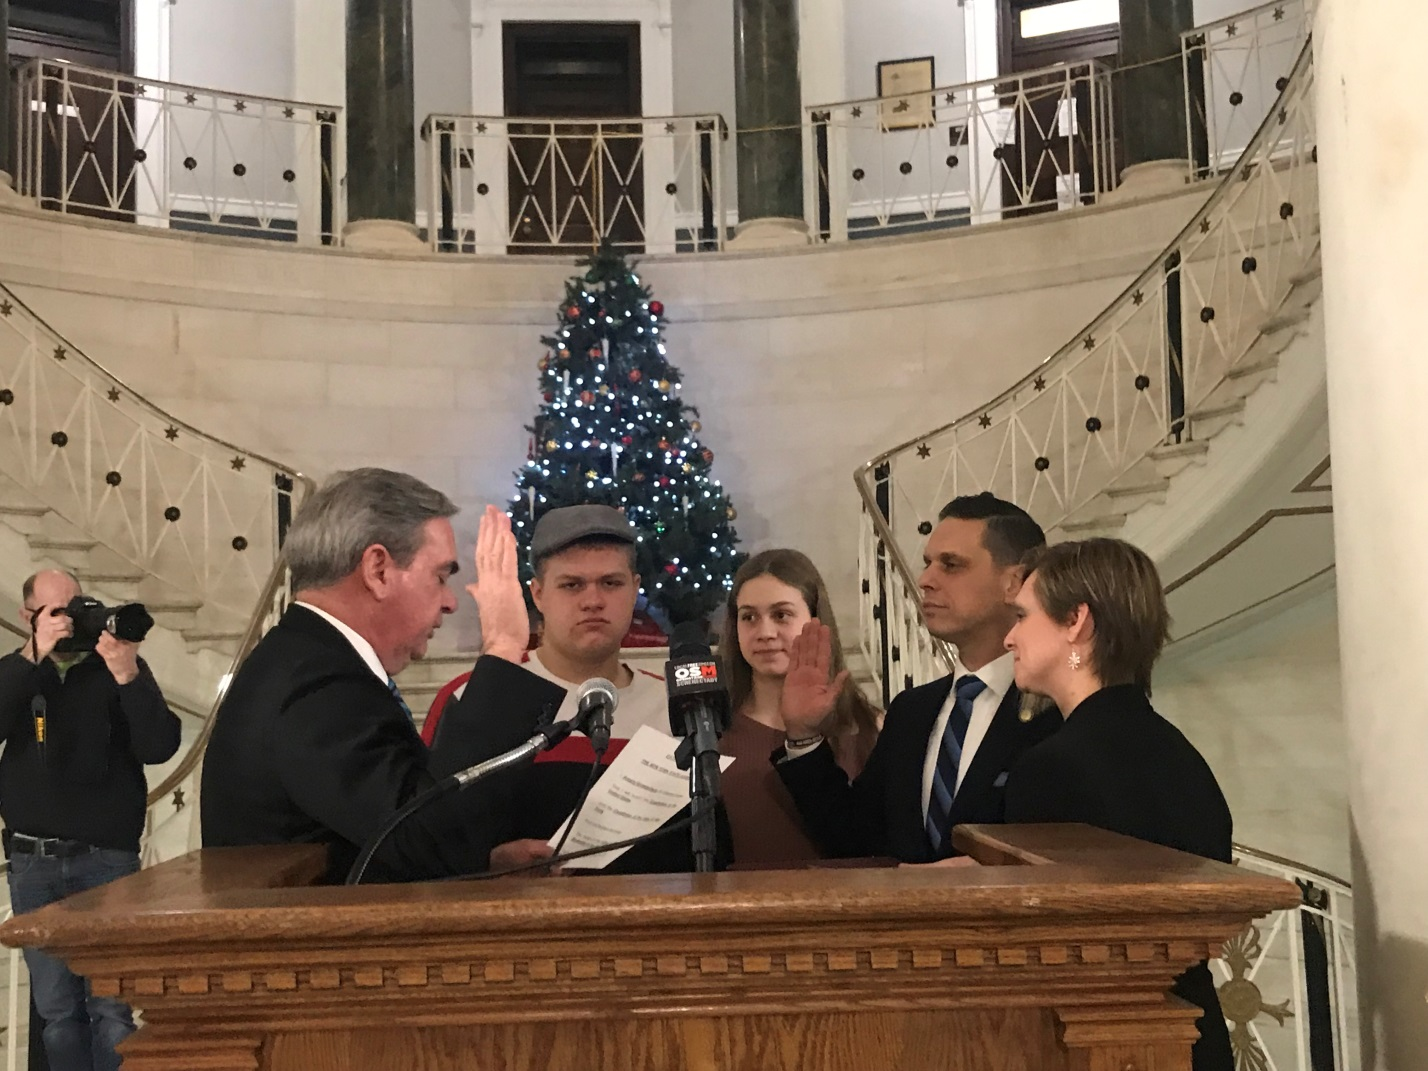 Assemblyman Angelo Santabarbara is sworn in by Schenectady City Mayor Gary McCarthy. From left to right is Mayor McCarthy, son Michael, daughter Marianna, Assemblyman Santabarbara, and wife Jennifer.